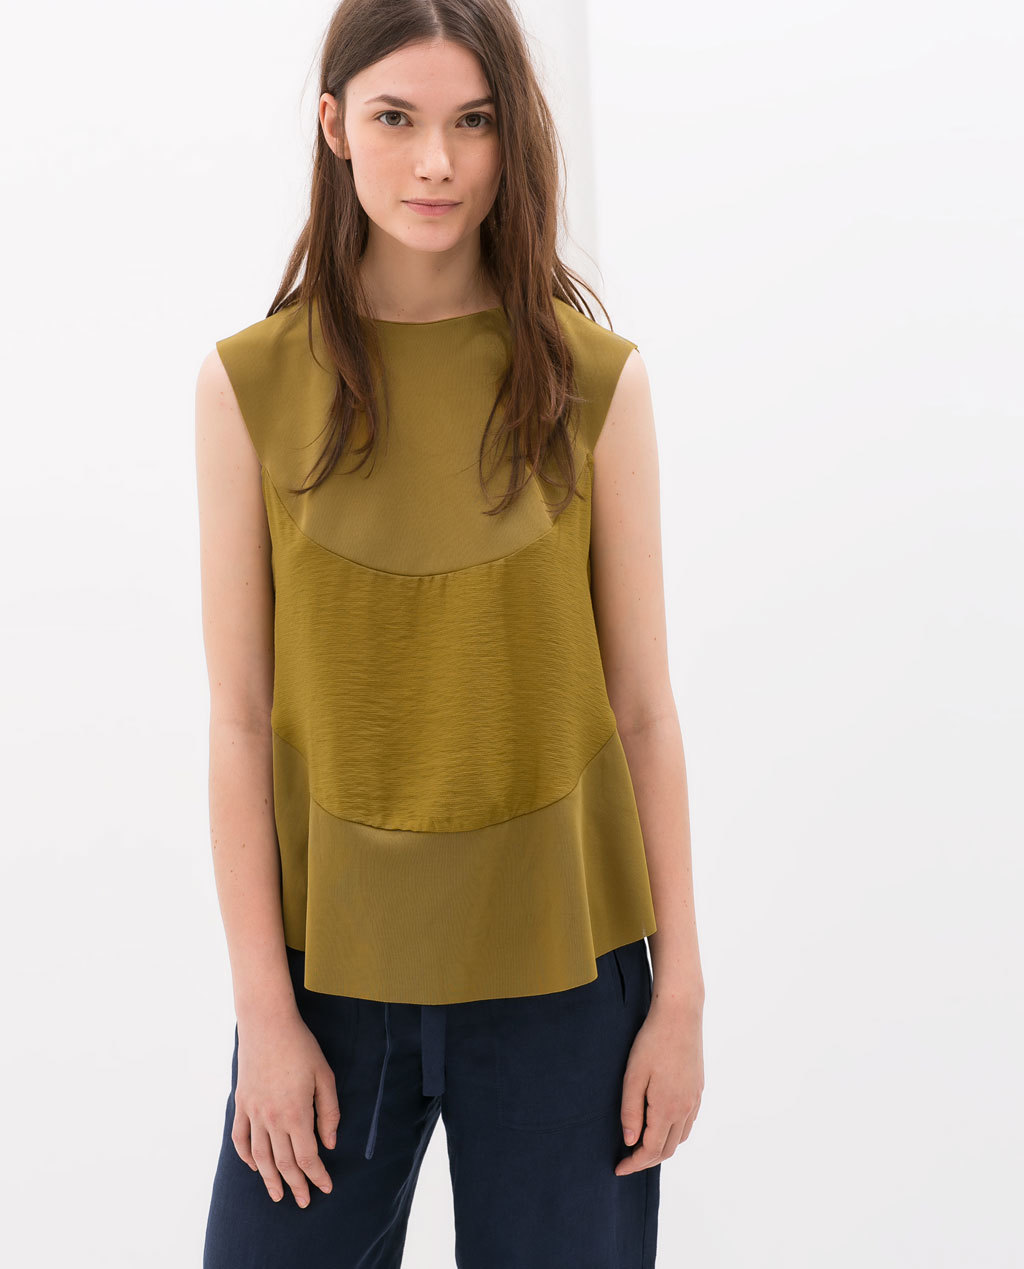 Combined Top With Slits - pattern: plain; sleeve style: sleeveless; predominant colour: khaki; occasions: casual; length: standard; style: top; fibres: polyester/polyamide - 100%; fit: loose; neckline: crew; sleeve length: sleeveless; pattern type: fabric; texture group: other - light to midweight; season: s/s 2014